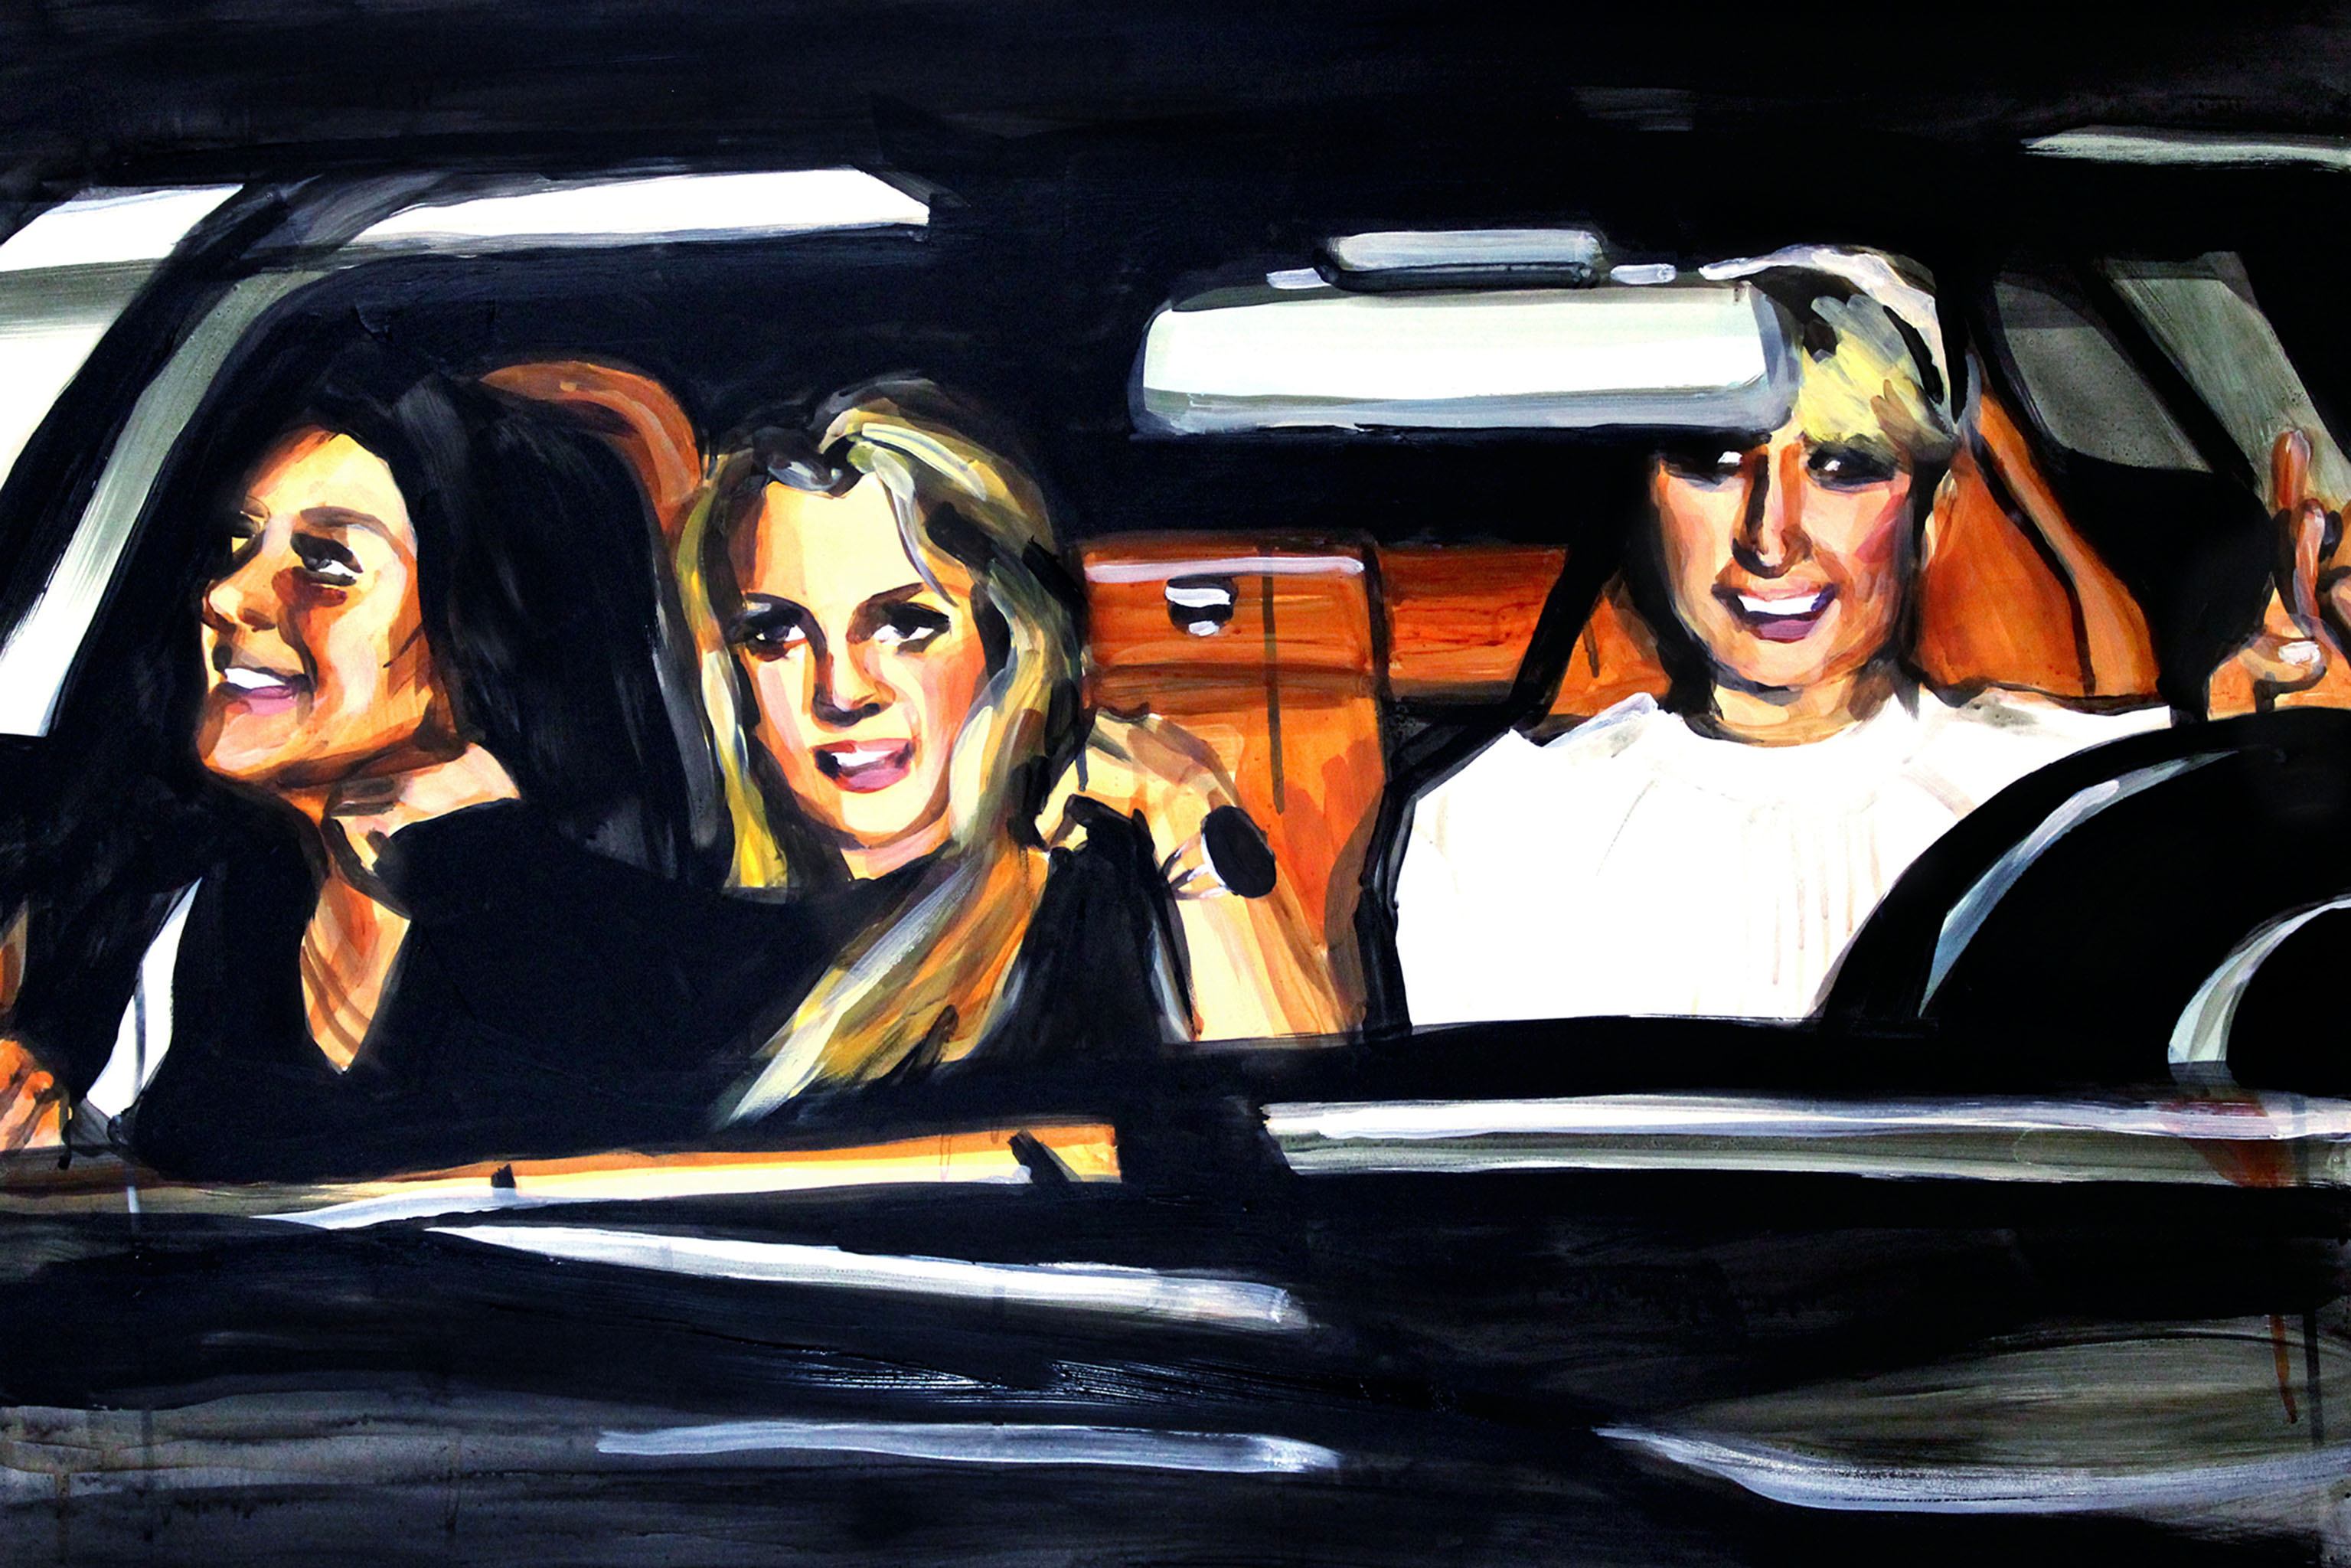 'Lindsay Lohan Britney Spears and Paris Hilton in a Car' by Laura Collins